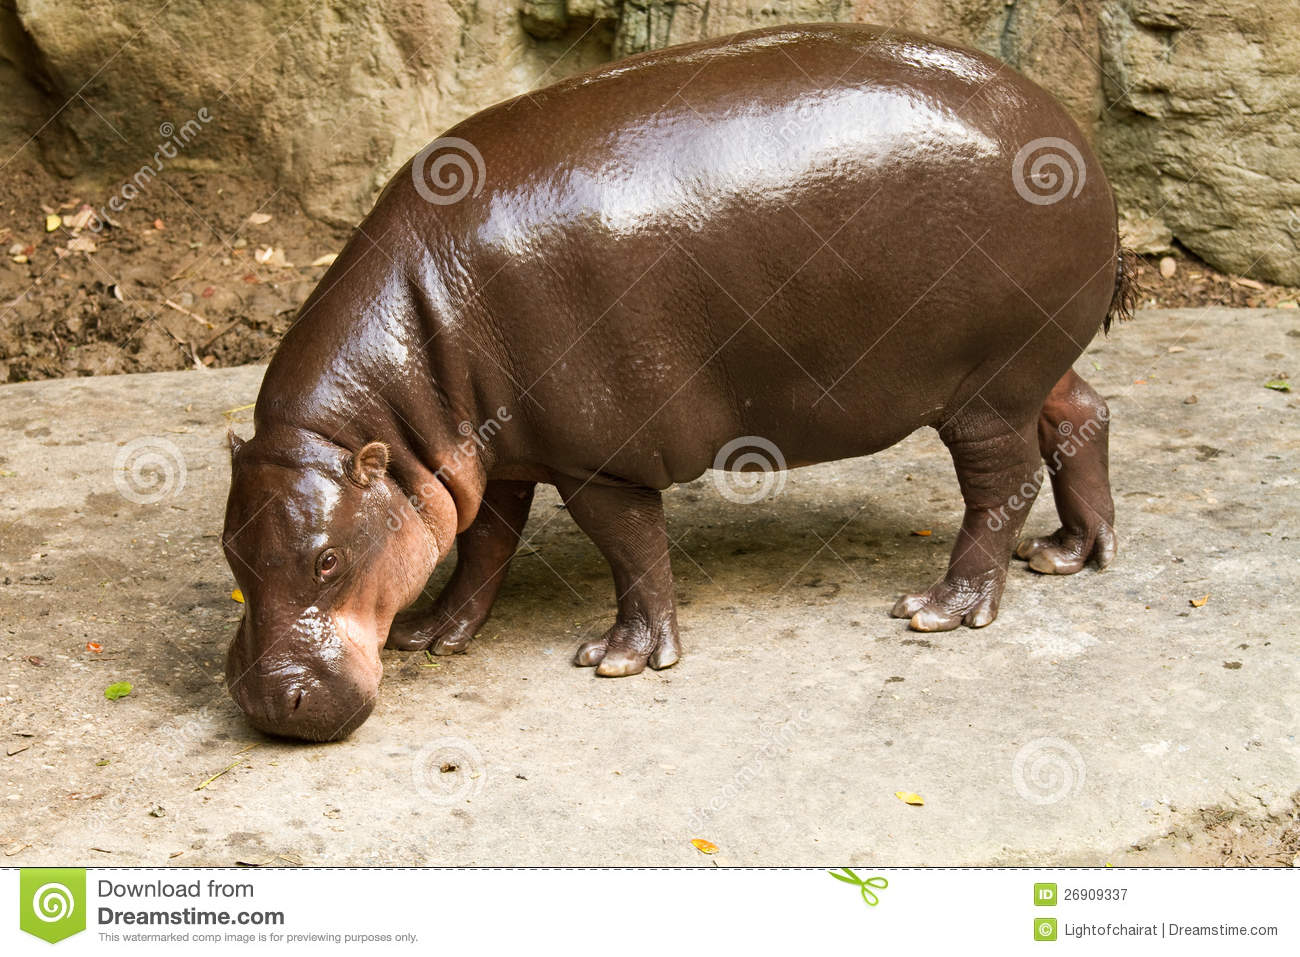 Hippopotamus Eating Grass Stock Photo - Image: 23596010 |Hippo Eating Grass